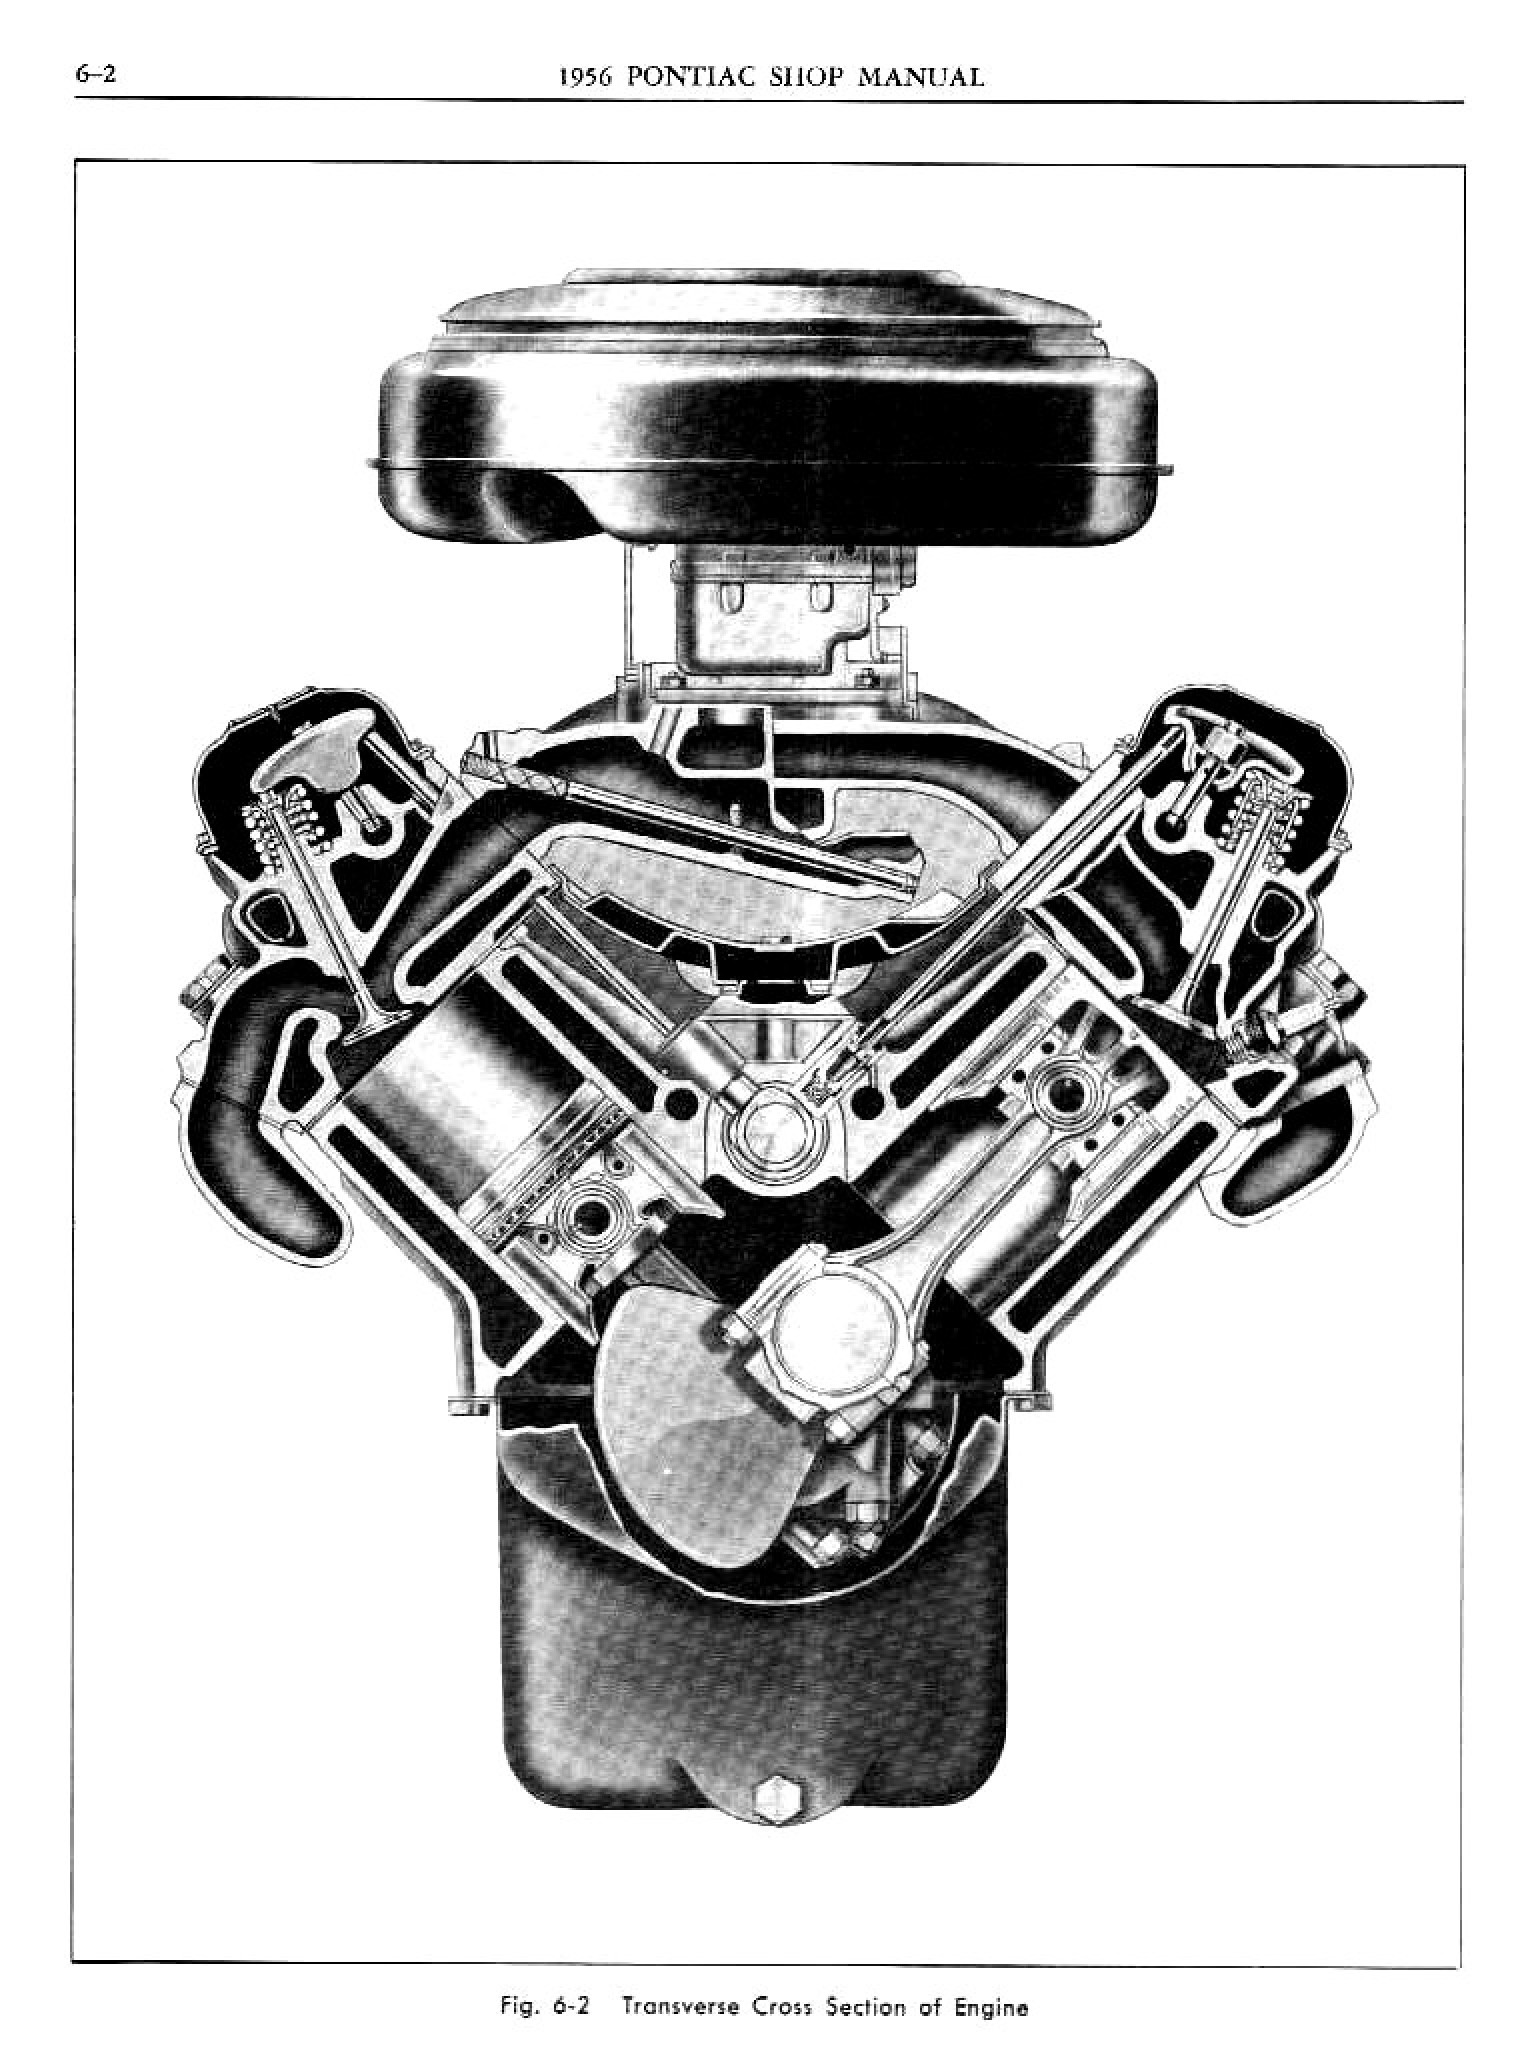 1956 Pontiac Shop Manual- Engine Page 3 of 56